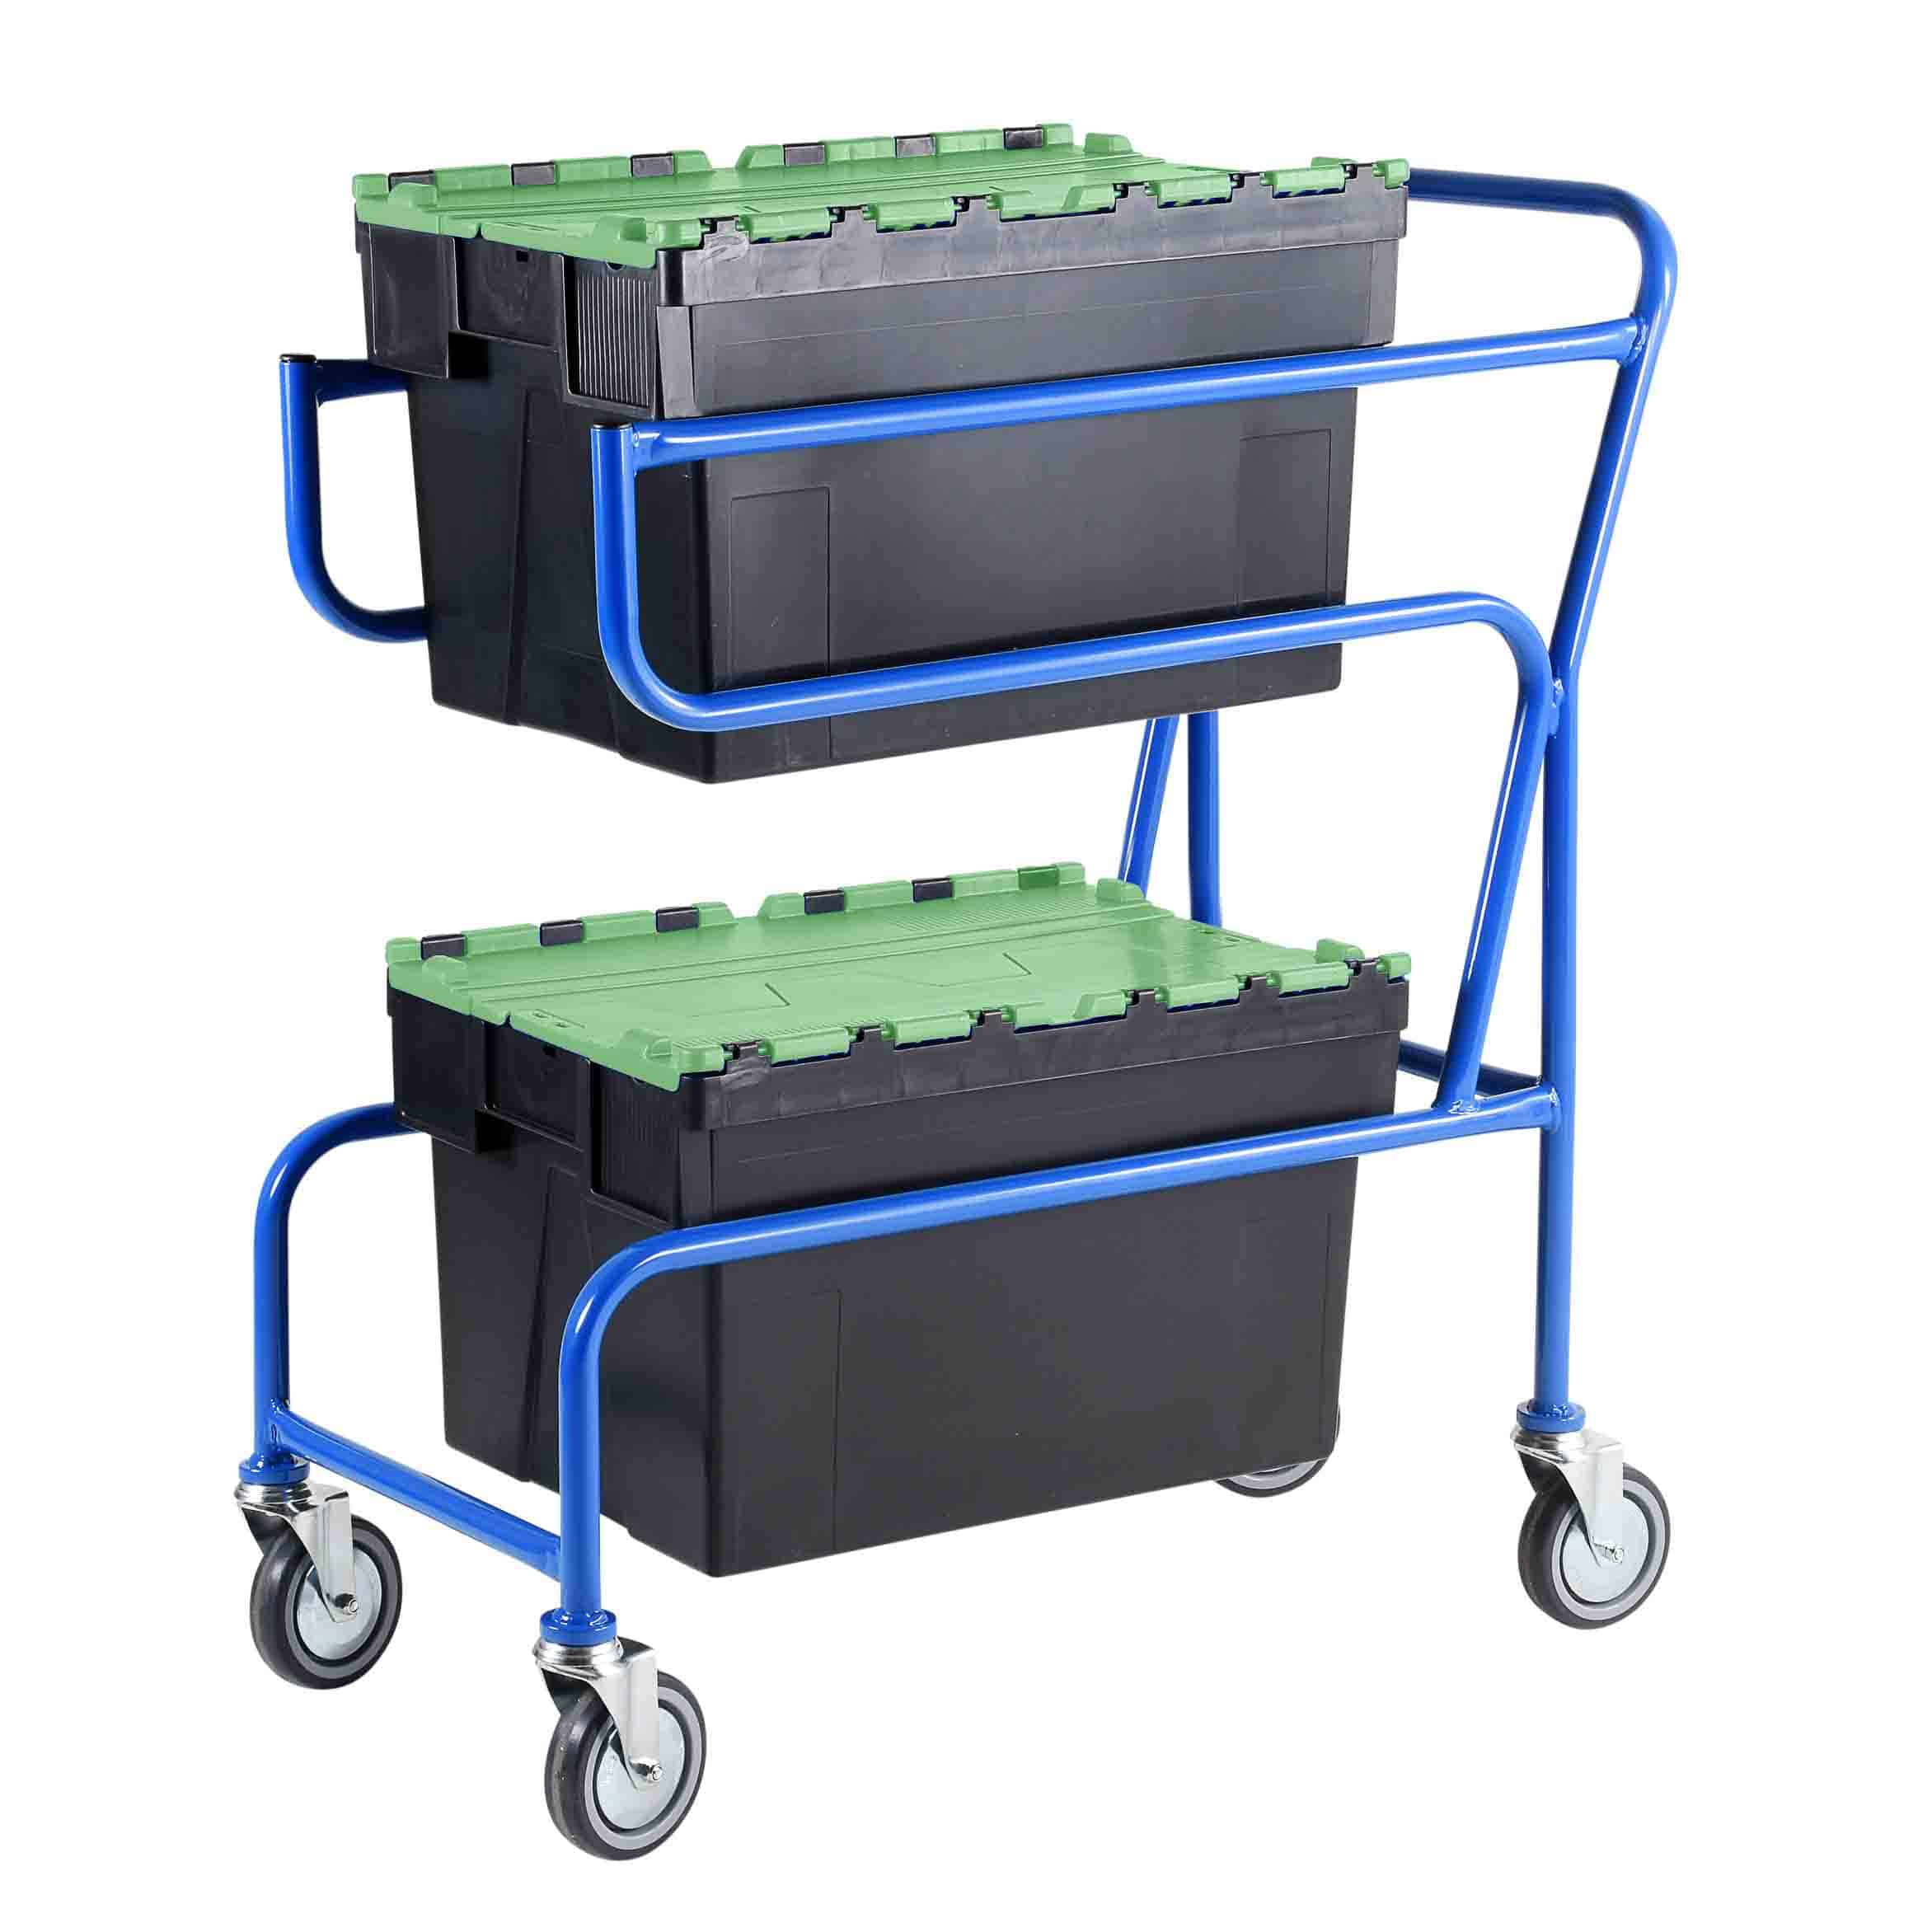 Multi-Trip Green Lidded Euro Container Trolley